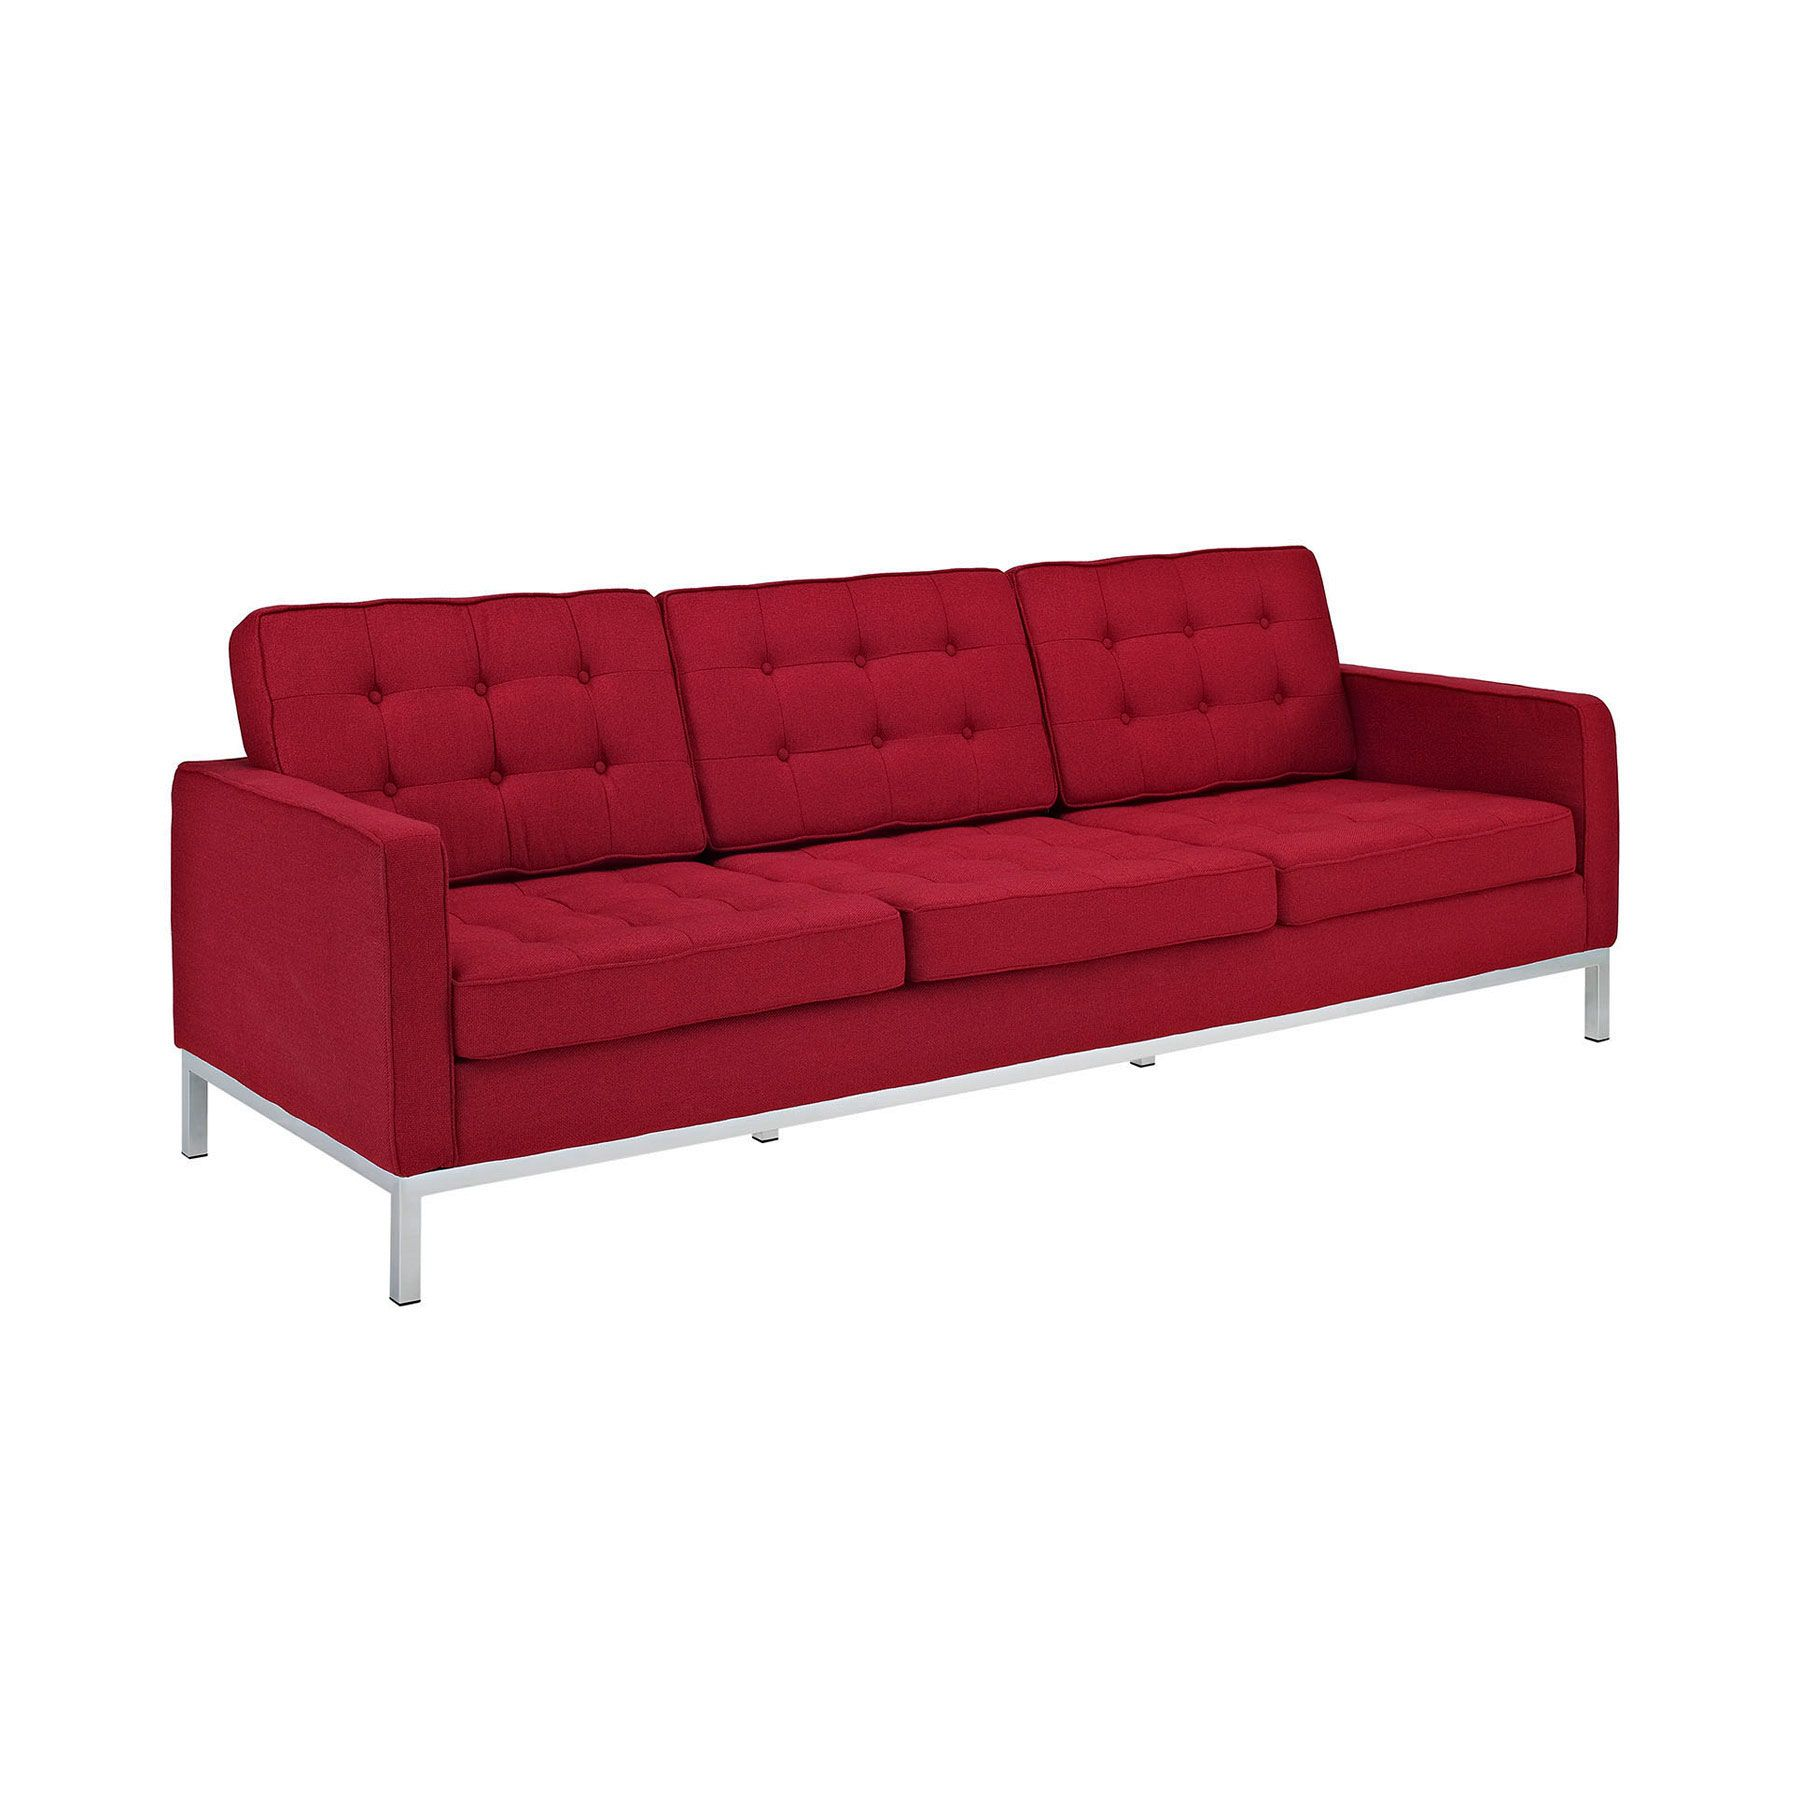 Swanky Sofa in Raspberry | dotandbo.com. I. MUST.HAVE.THIS...MUST!!!